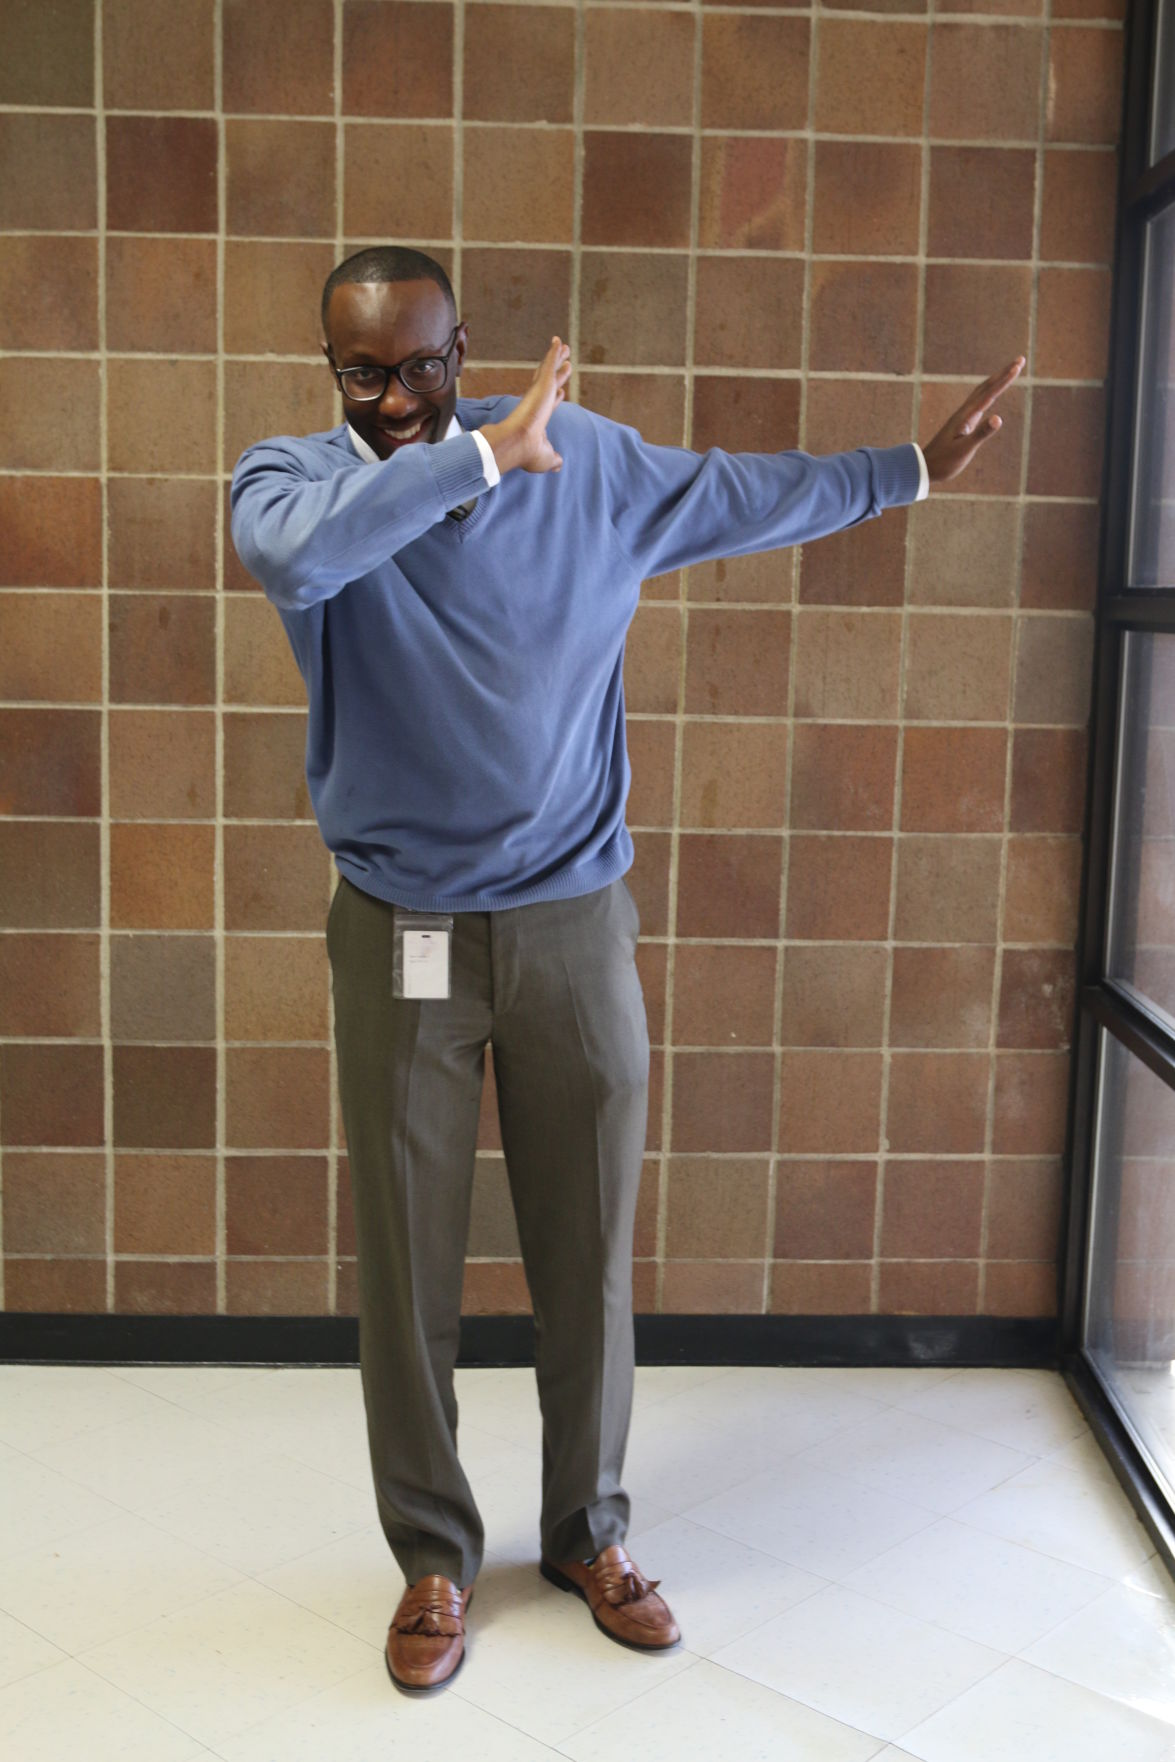 David Copeland shows off his dab as he prepares for Dancing for Our Future Stars.